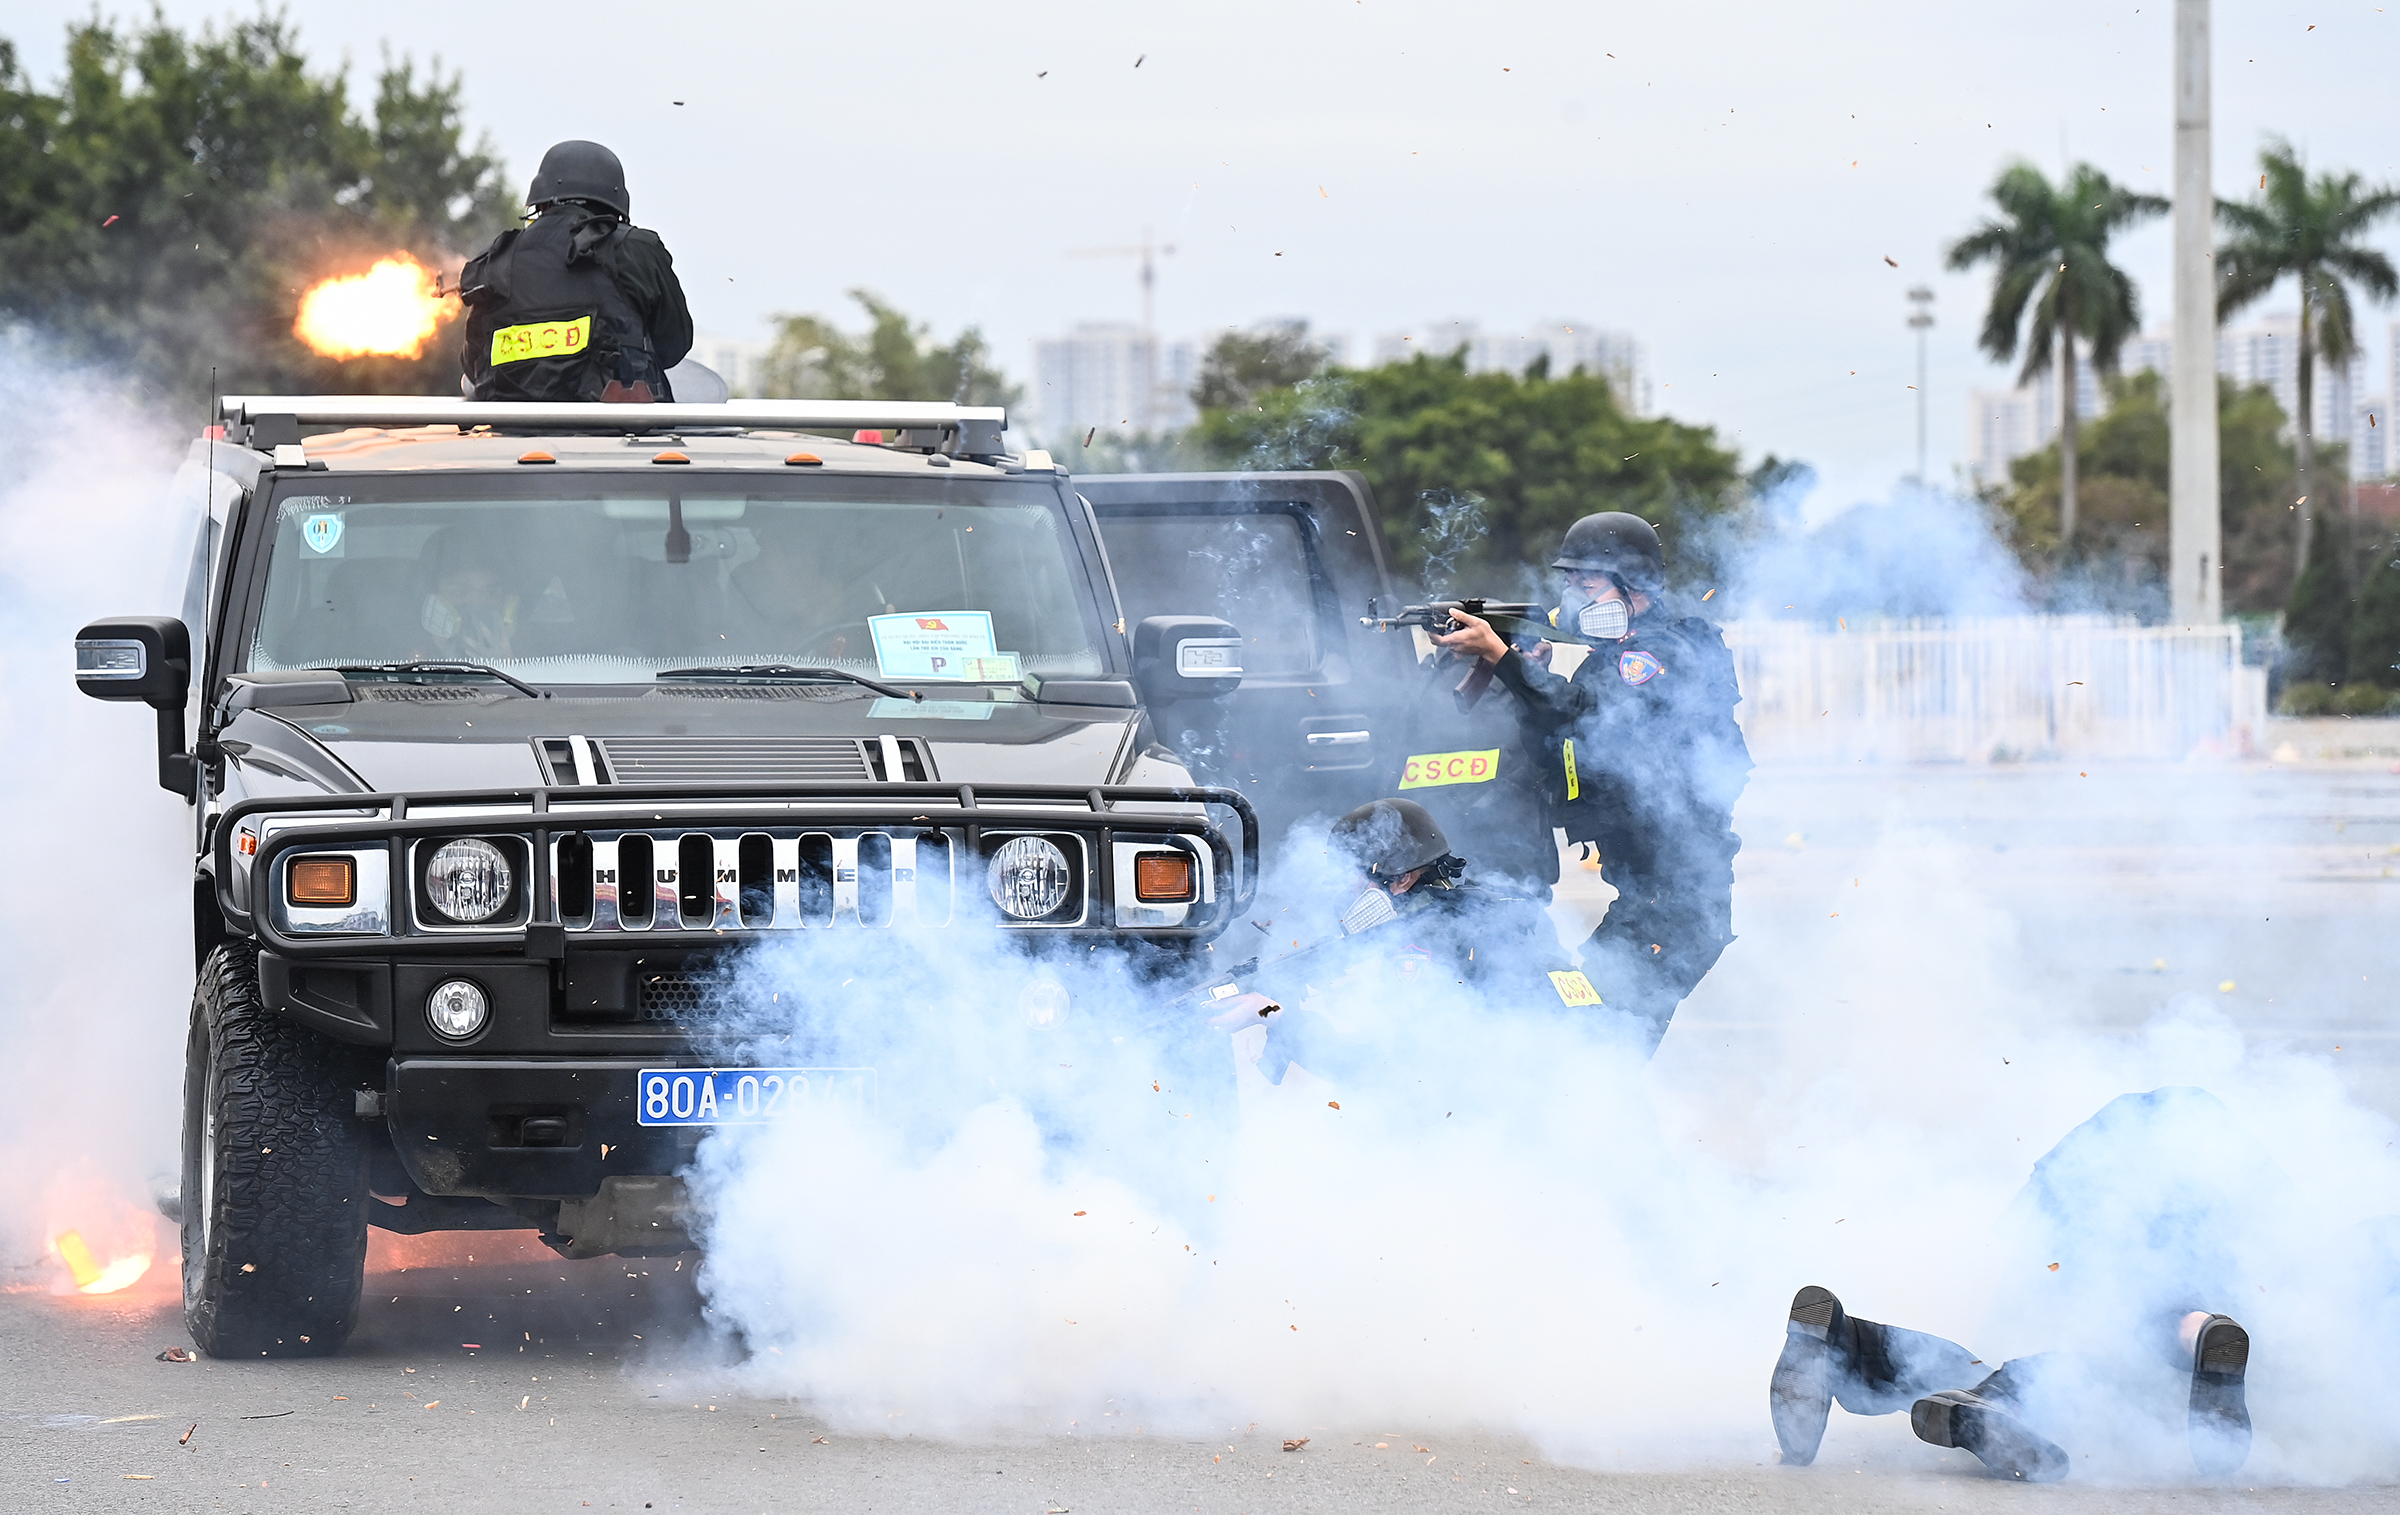 Security forces launch anti-terror drill ahead of National Party Congress